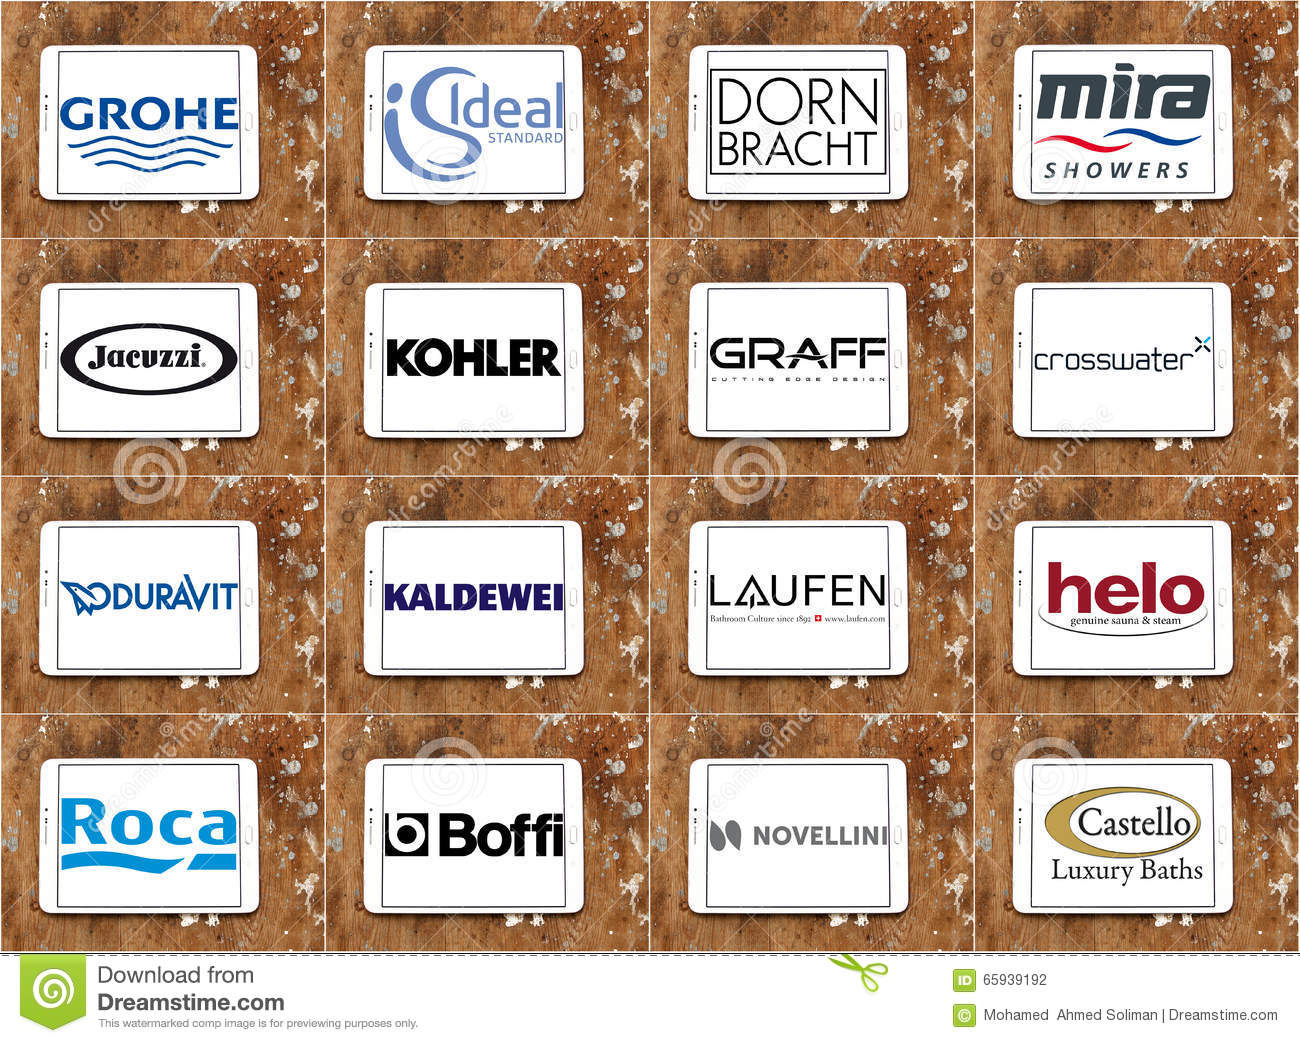 More Similar Stock Images Of `Top Famous Kitchen Appliance Brands And Logos`